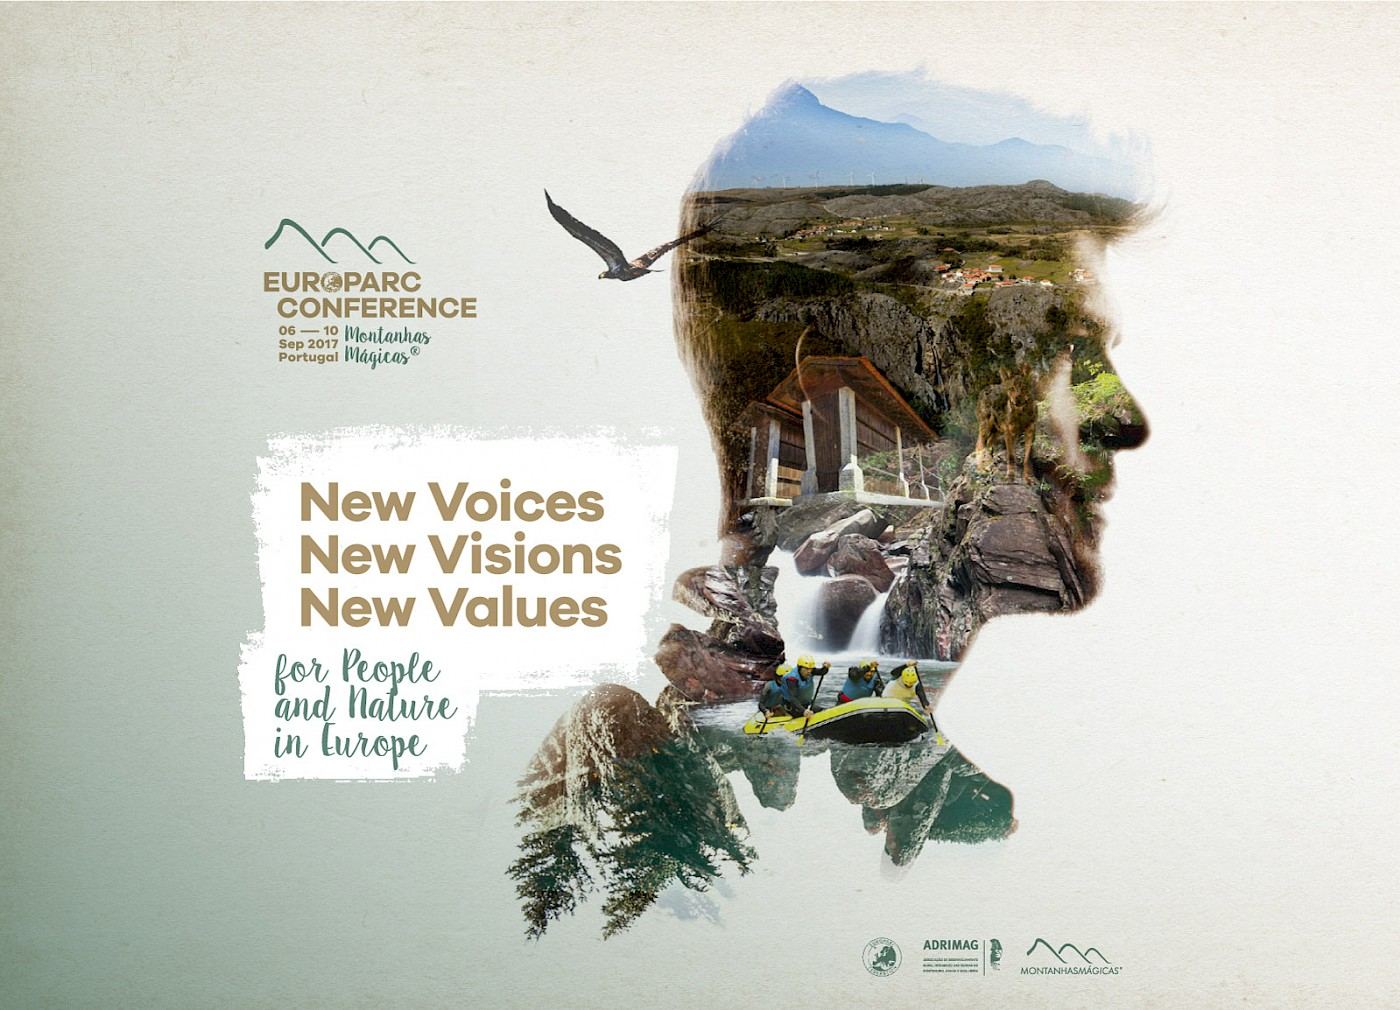 europarc conference 2017